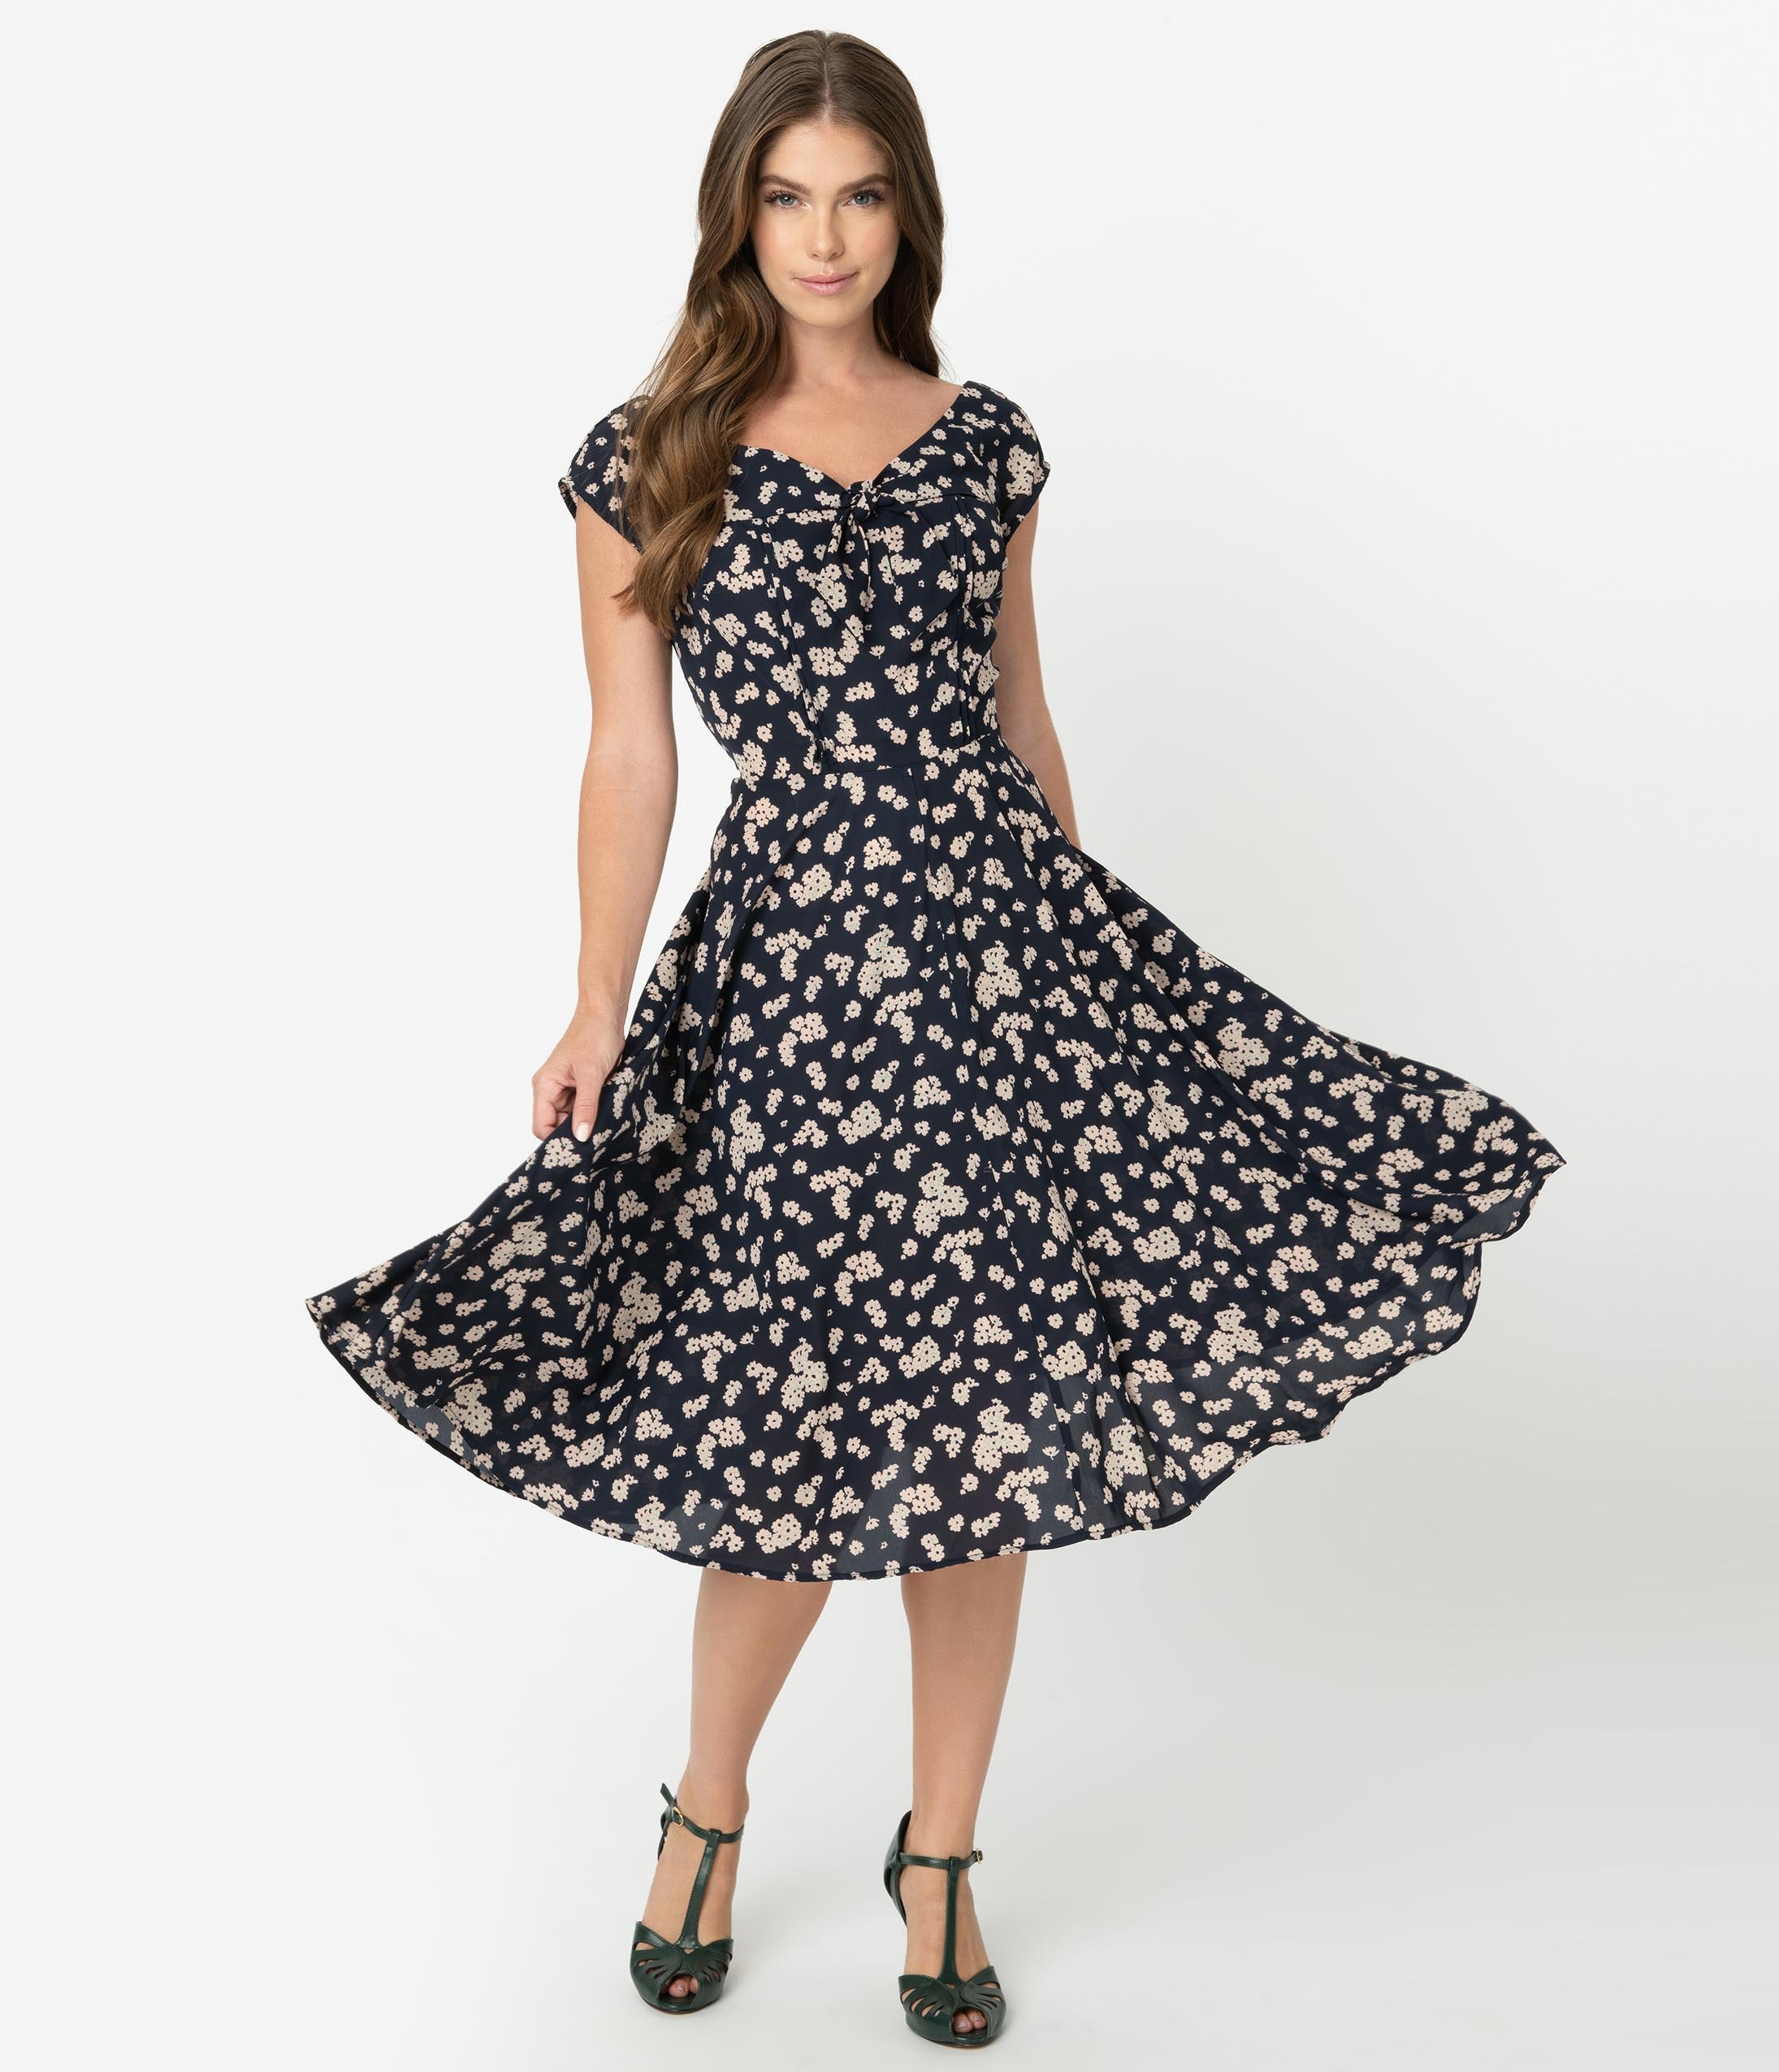 Swing Dance Clothing You Can Dance In Unique Vintage 1940S Style Navy  Pink Floral Print Havilland Dress $78.00 AT vintagedancer.com